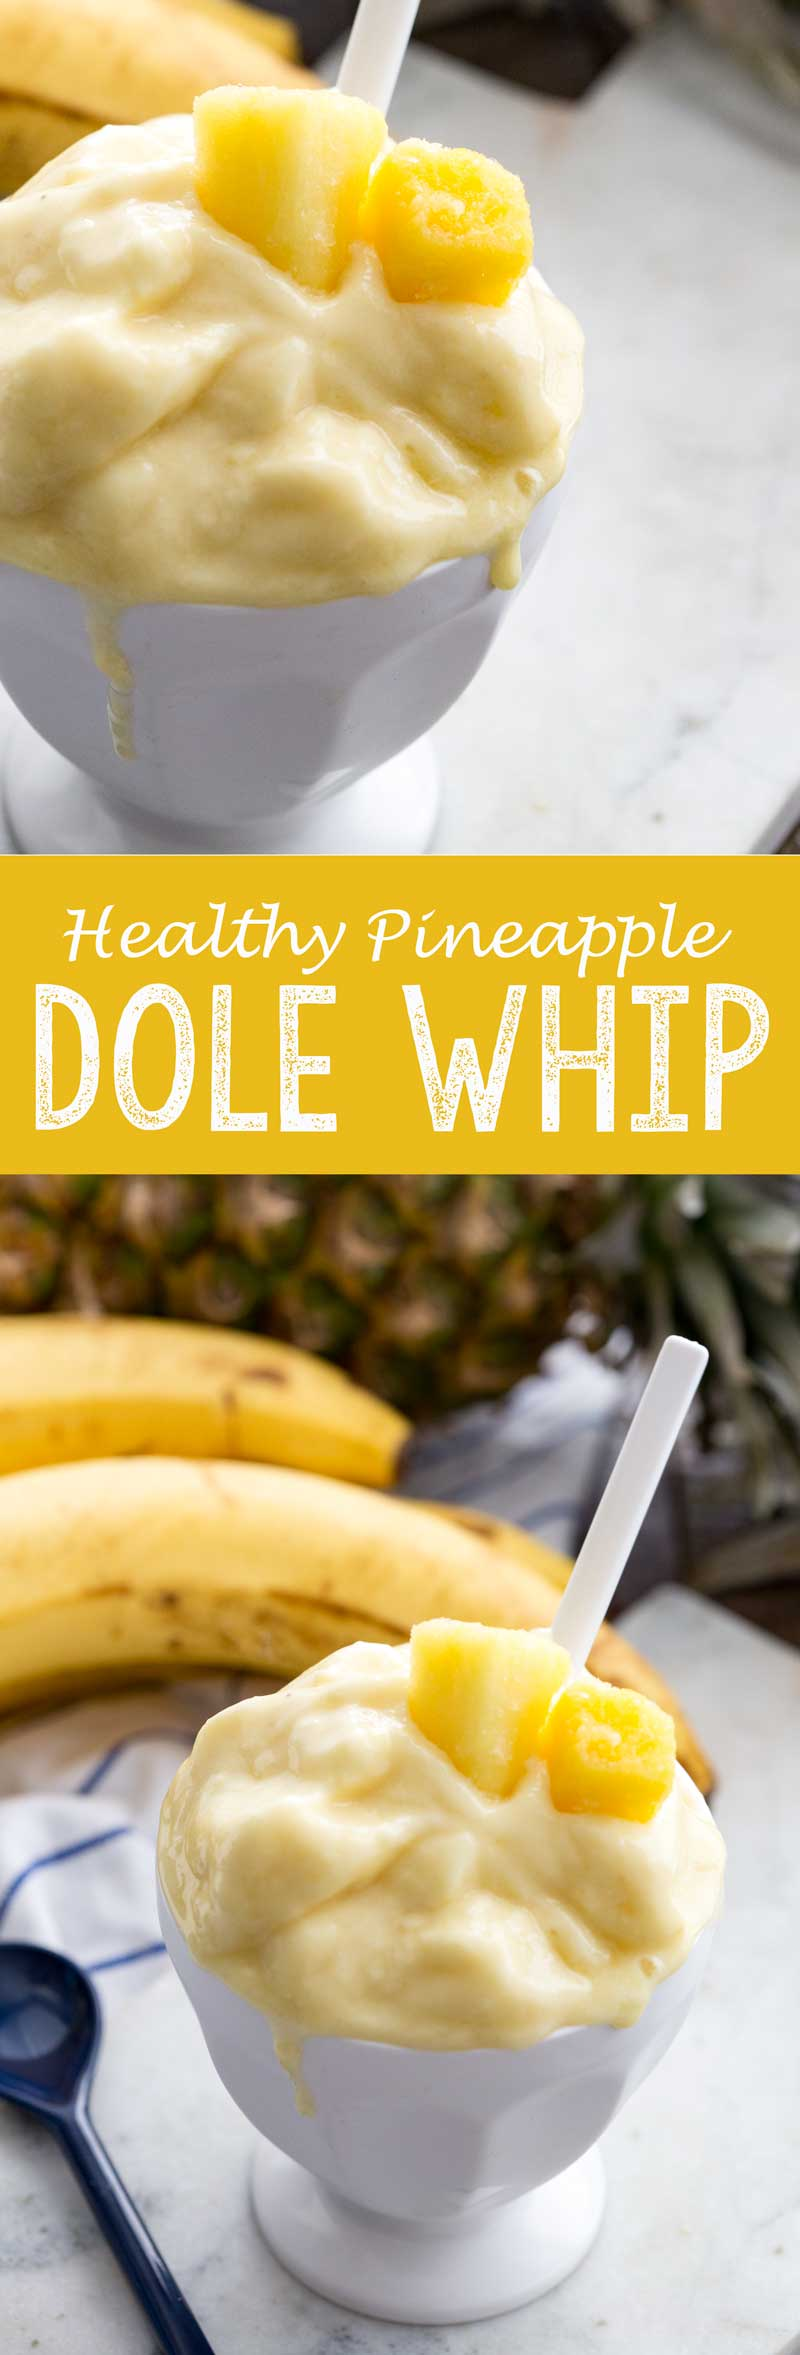 Healthy Pineapple Dole Whip made from all fruit, juice, and more! Added protein makes it a great healthy snack idea.